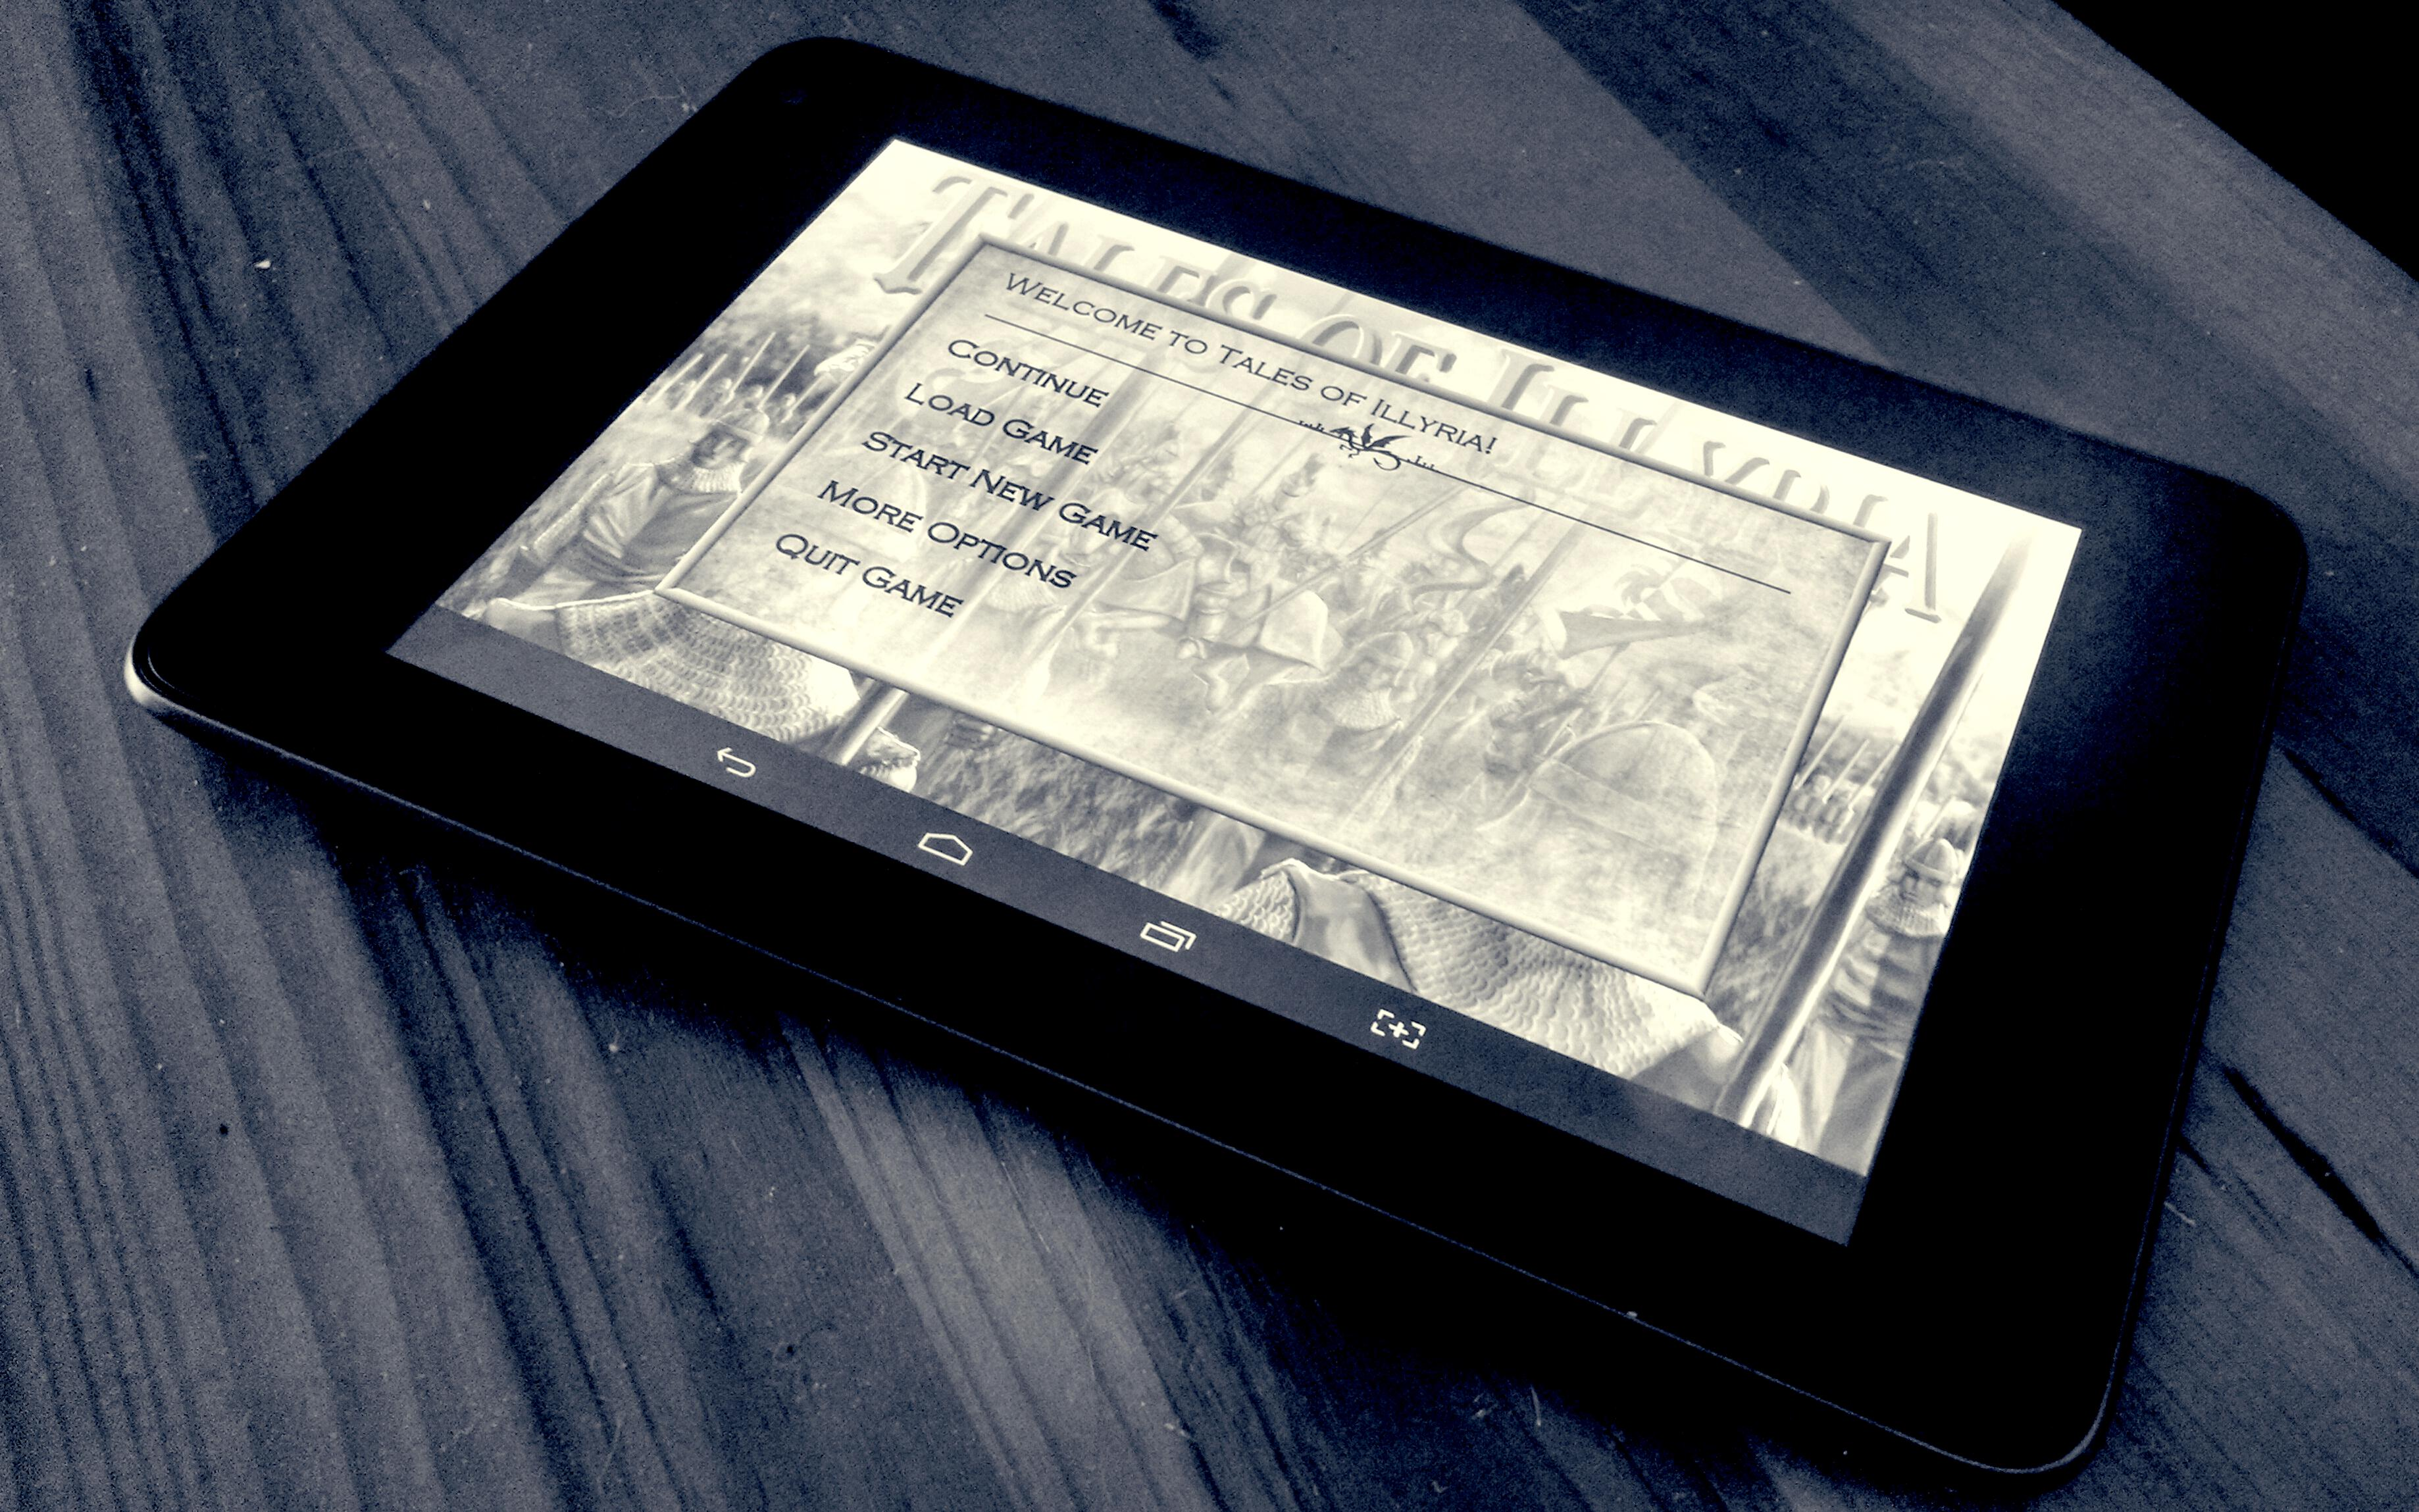 Tales of Illyria on tablet